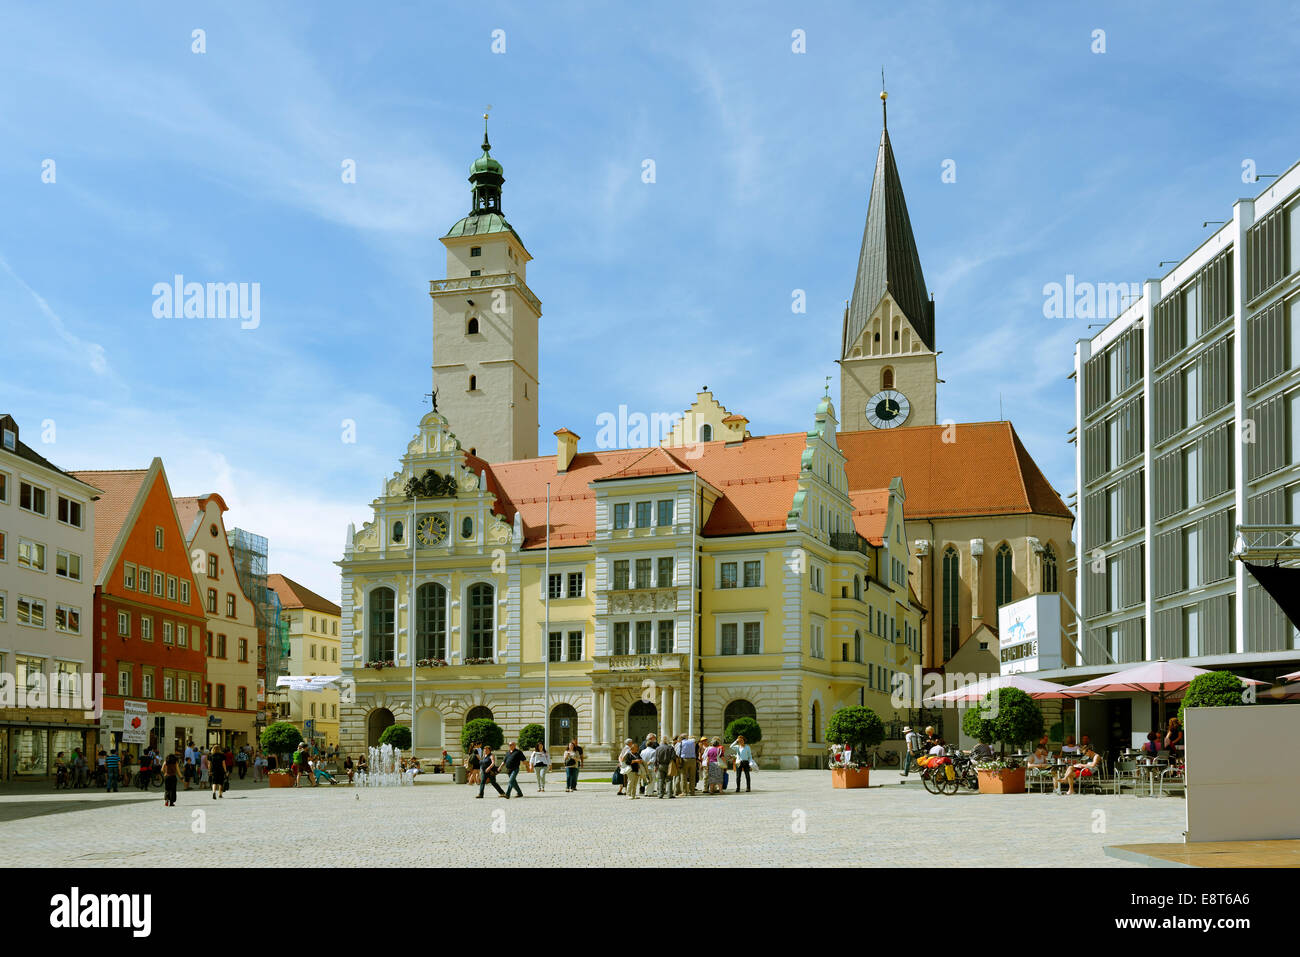 Old and New Town Hall, town hall square, Ingolstadt, Upper Bavaria, Bavaria, Germany Stock Photo